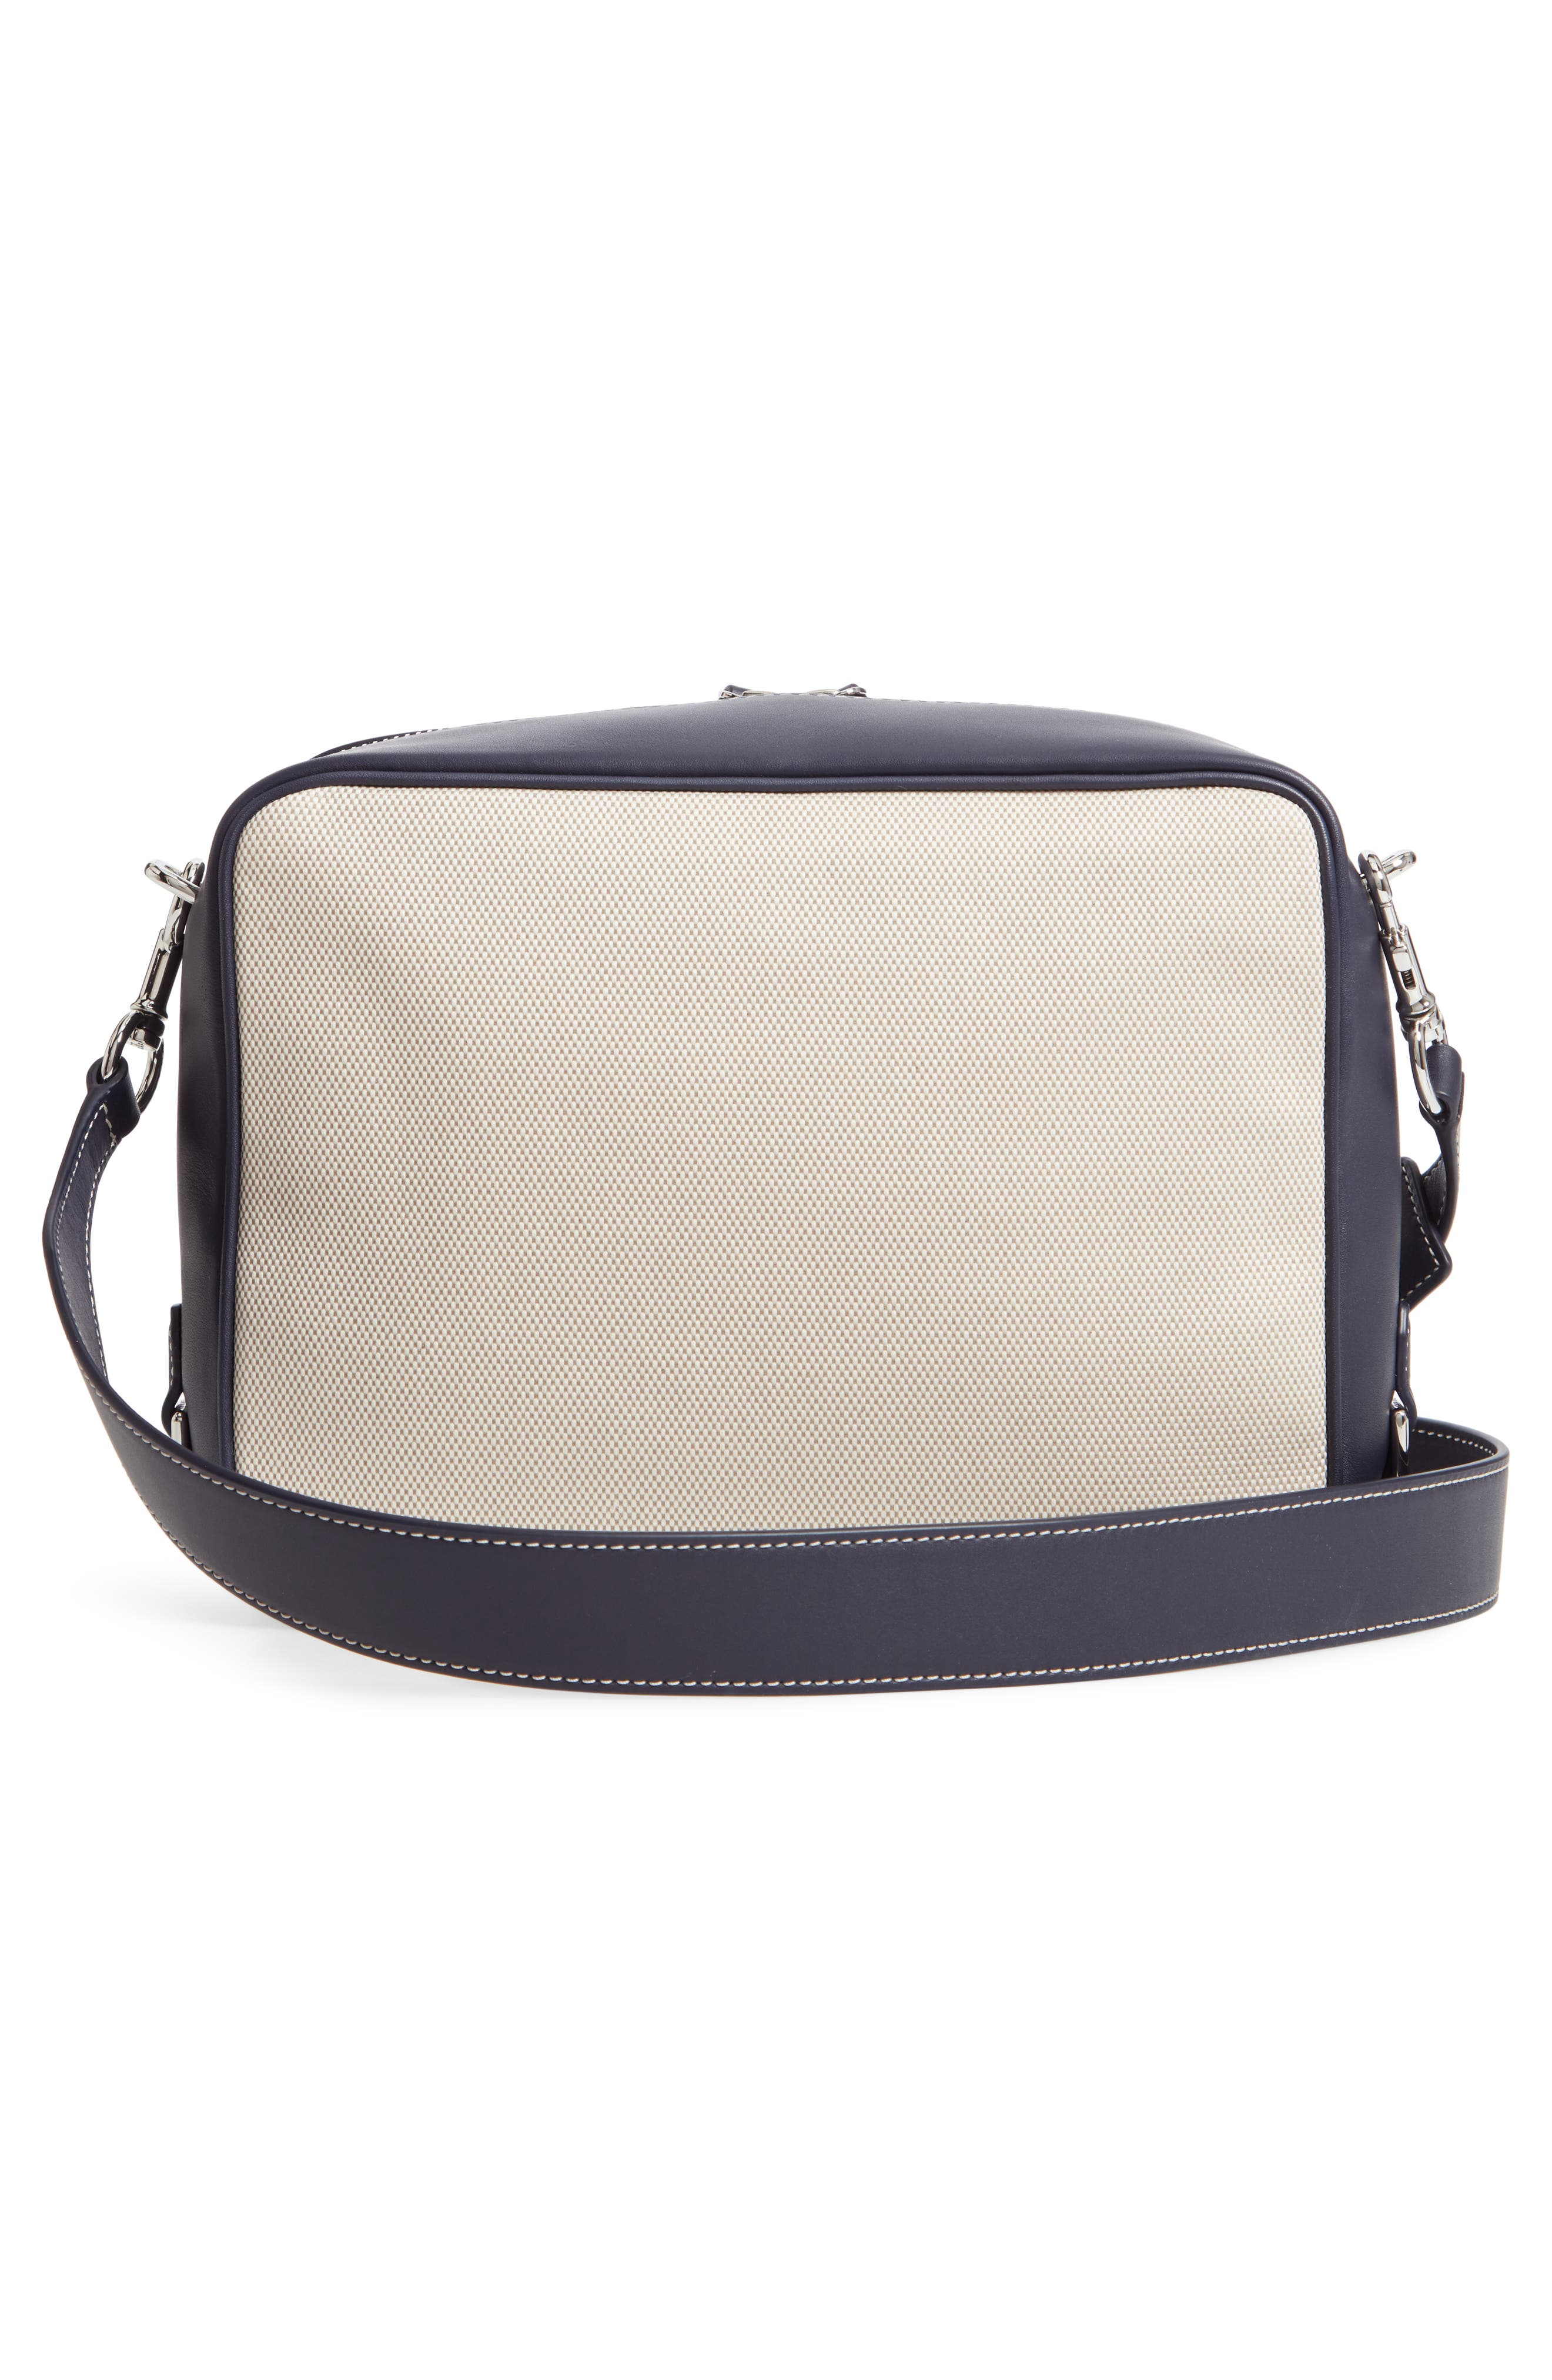 TORY BURCH, Leather & Canvas Camera Bag, Alternate thumbnail 4, color, MIDNIGHT